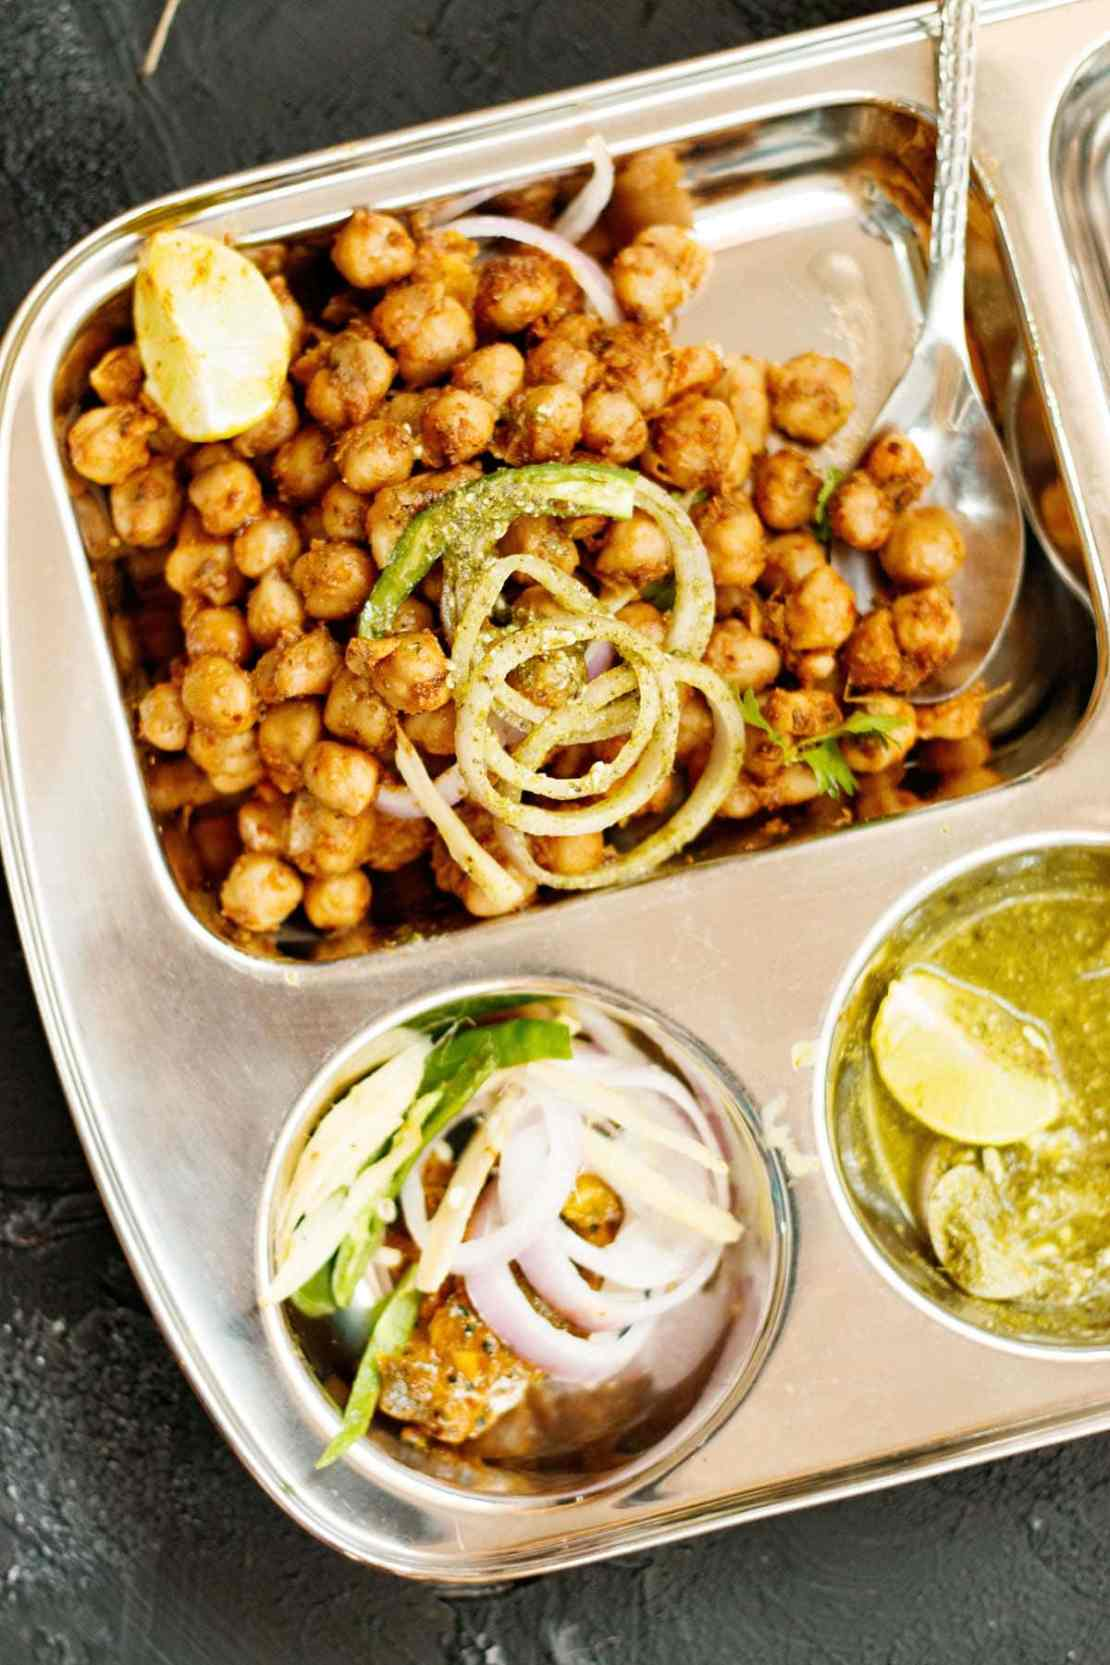 pindi chole served in a partitioned square tray with onion slices and lemon wedge on top with other partitions filled with onions, green chillies, mango pickle, lemon wedge and green chutney